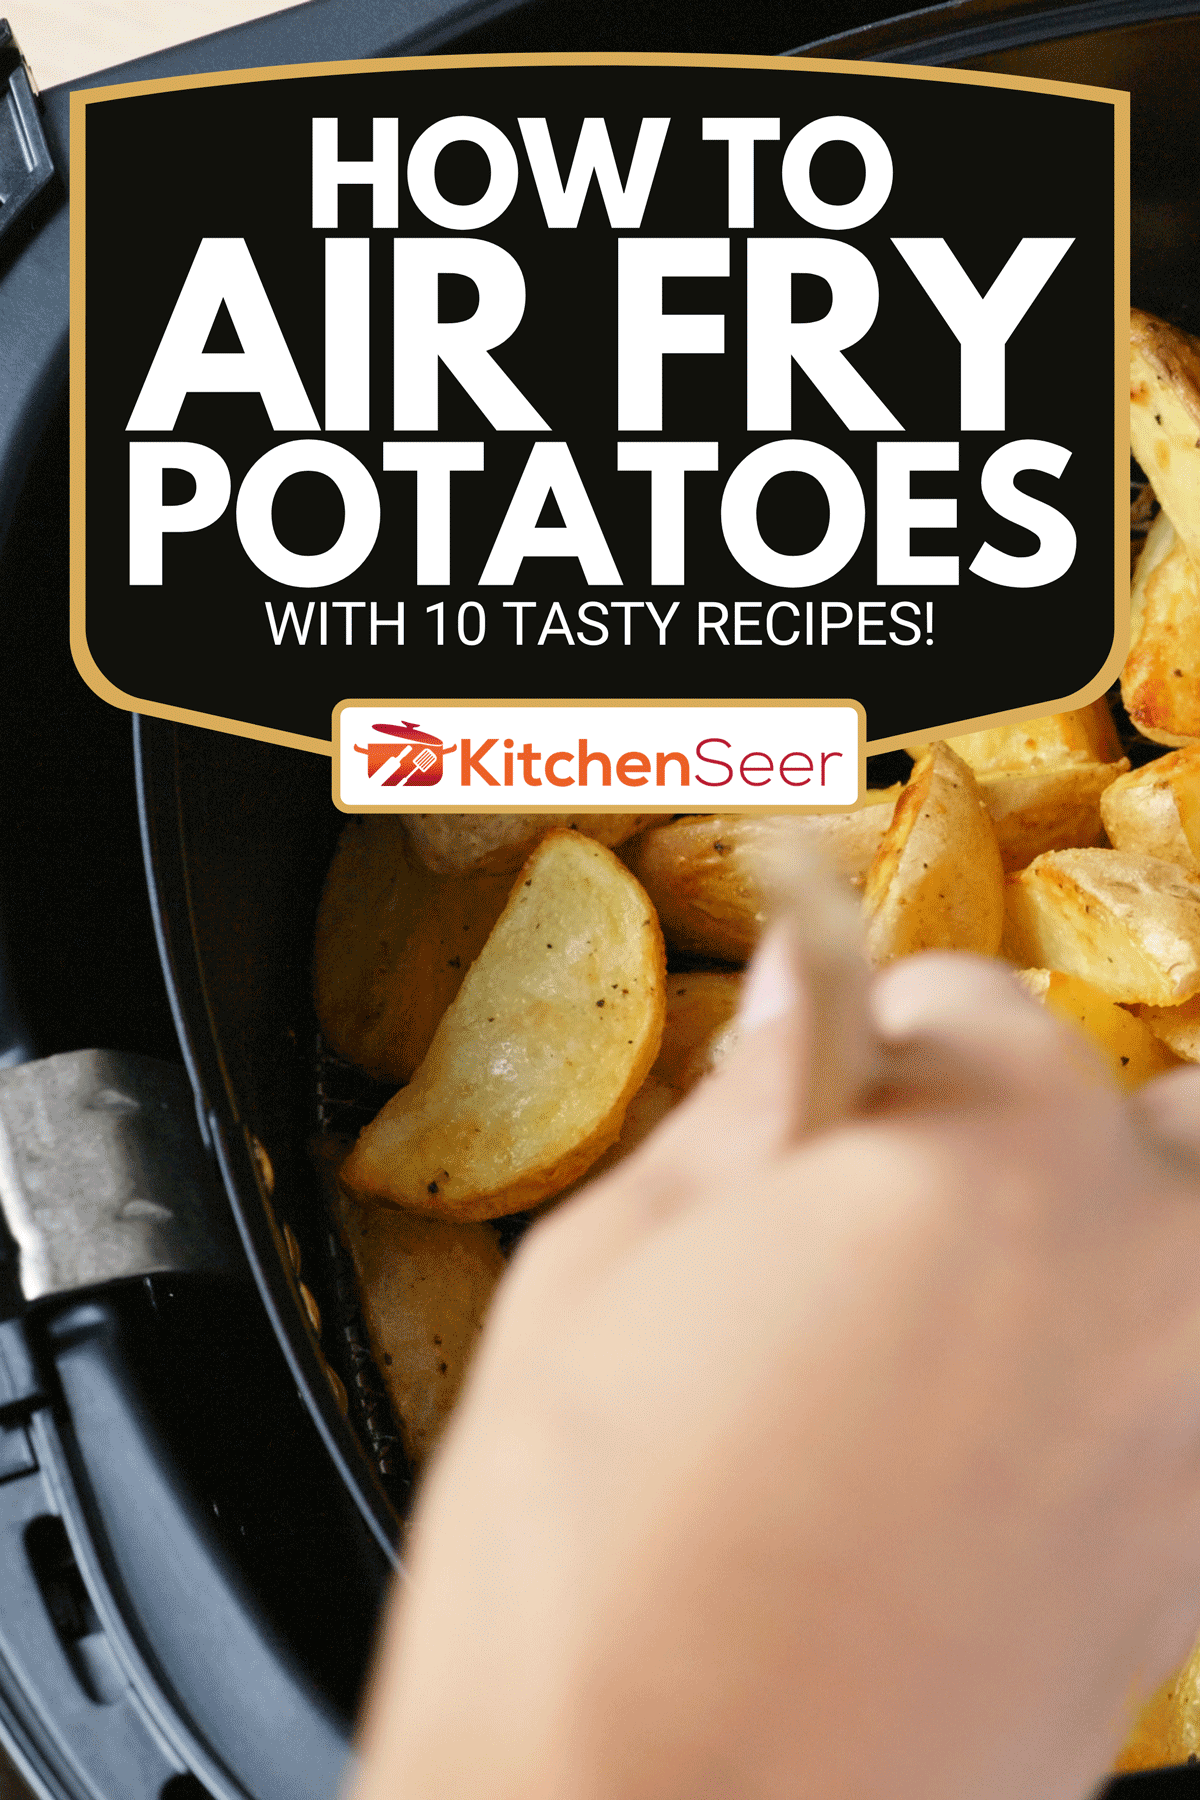 Homemade grilled potato inside an Air Fryer, How To Air Fry Potatoes - With 10 Tasty Recipes!